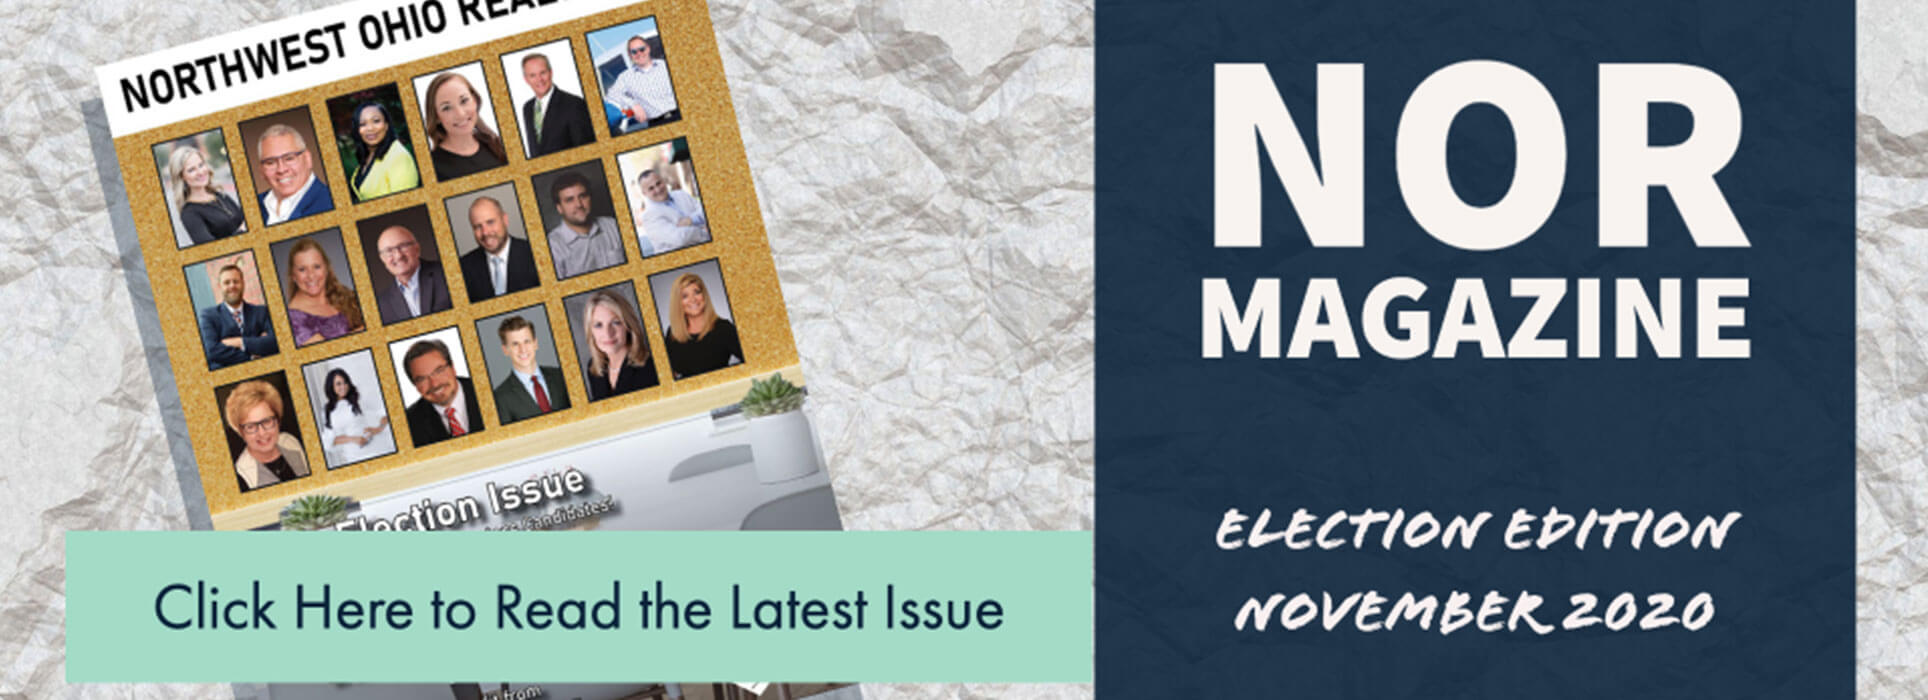 View the Lastest Issue of NOR Magazine